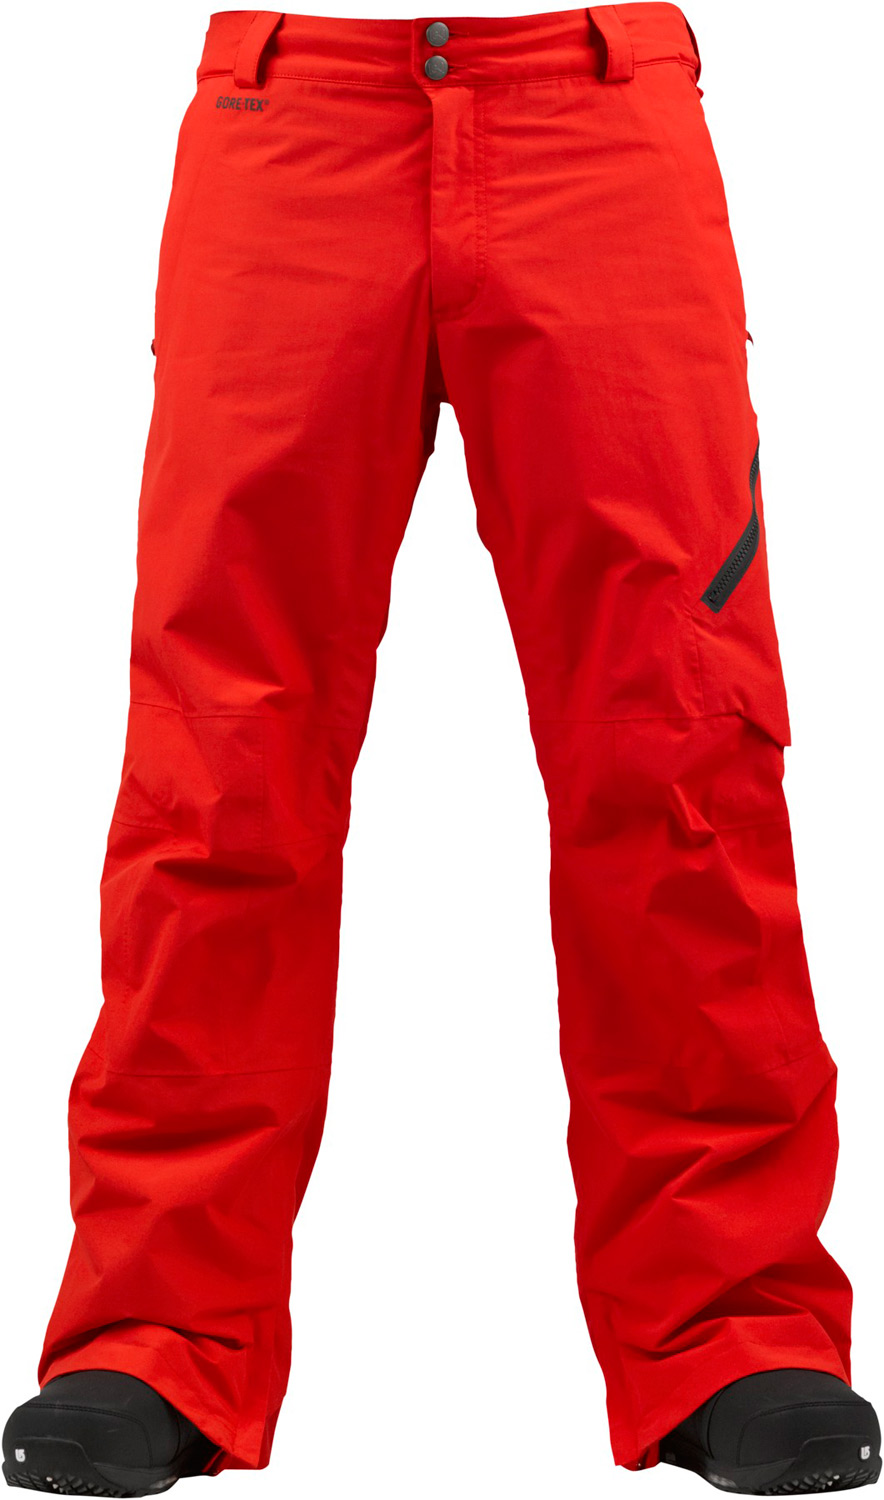 Snowboard Step up to the [ak] advantage. Mandatory GOre-teX fabric performance for the 100-day season.Key Features of the Burton AK 2L Cyclic Snowboard Pants: Waterproofing: Gore-Tex® Fabric (2-Layer) Fully taped seams with Gore-Seam® tape [13MM] Warmth: mapped with Mesh Lining [ak] Fit with engineered articulation YKK® Matte water-resistant Zippers Zippered Cargo Pocket Light reflective Detailing Lifetime warranty Includes Men's [ak] Pant Features Package GORE-TEX® Fabric Fully Taped Seams with GORE-SEAM® Tape [ak] Fit with Engineered Articulation Inner Thigh Vents Integrated Waist Adjustment [ak] Logo Fly Shanks Ghetto Slits Snap-Up Leg Lifts™—Keep Your Cuffs Scuff-Free Lifetime Warranty Zippered, Microfleece-Lined Handwarmer Pockets Jacket-to-Pant Interface Boot Gaiter with Cuff-to-Boot Interface Headphone Cable Port - $231.95